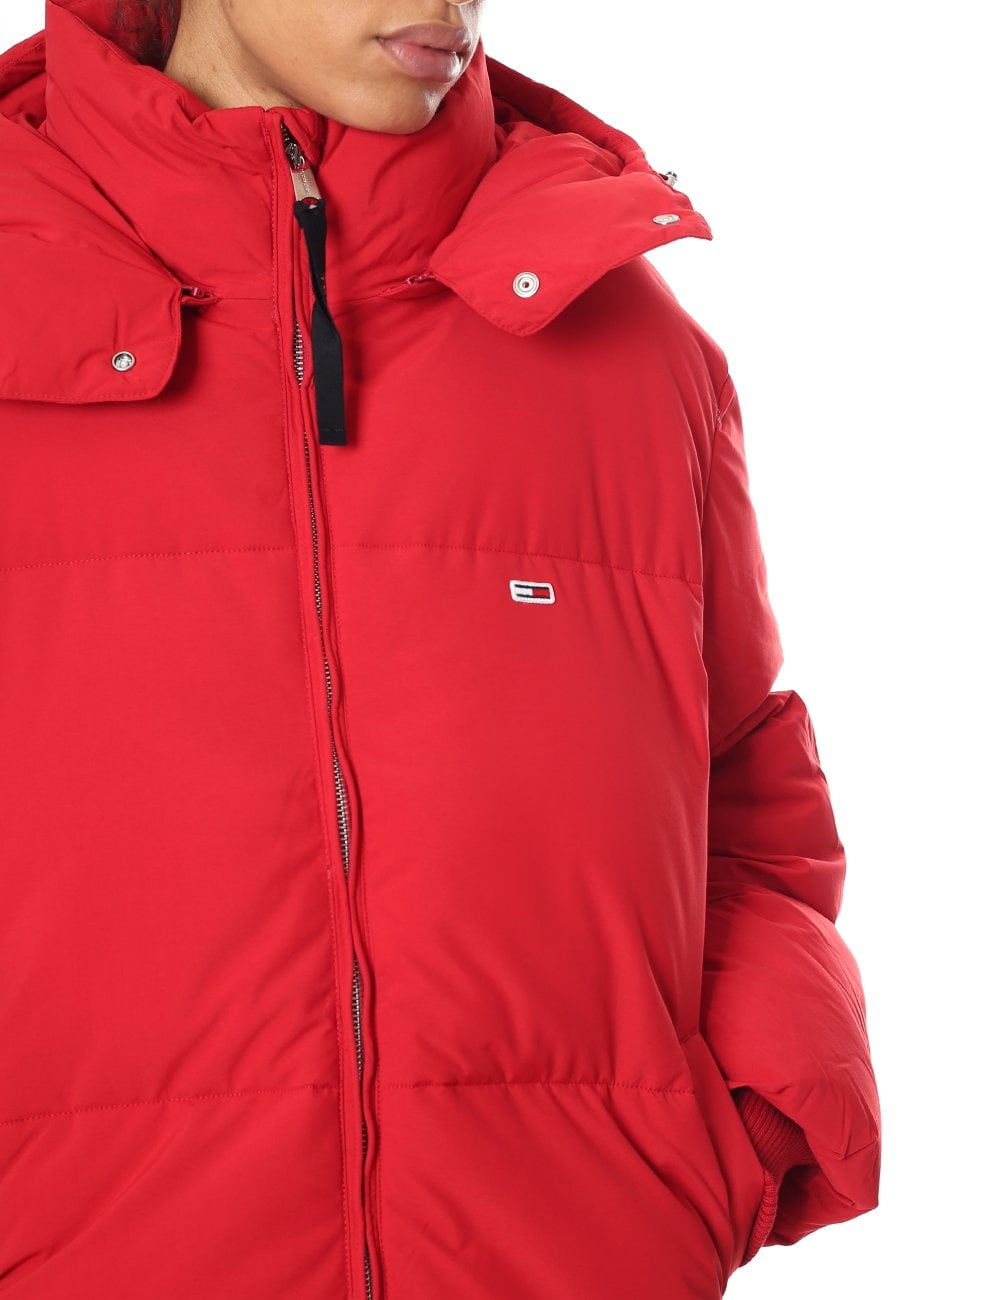 ab52bbf6c Tommy Hilfiger Woman's Oversized Puffer Jacket